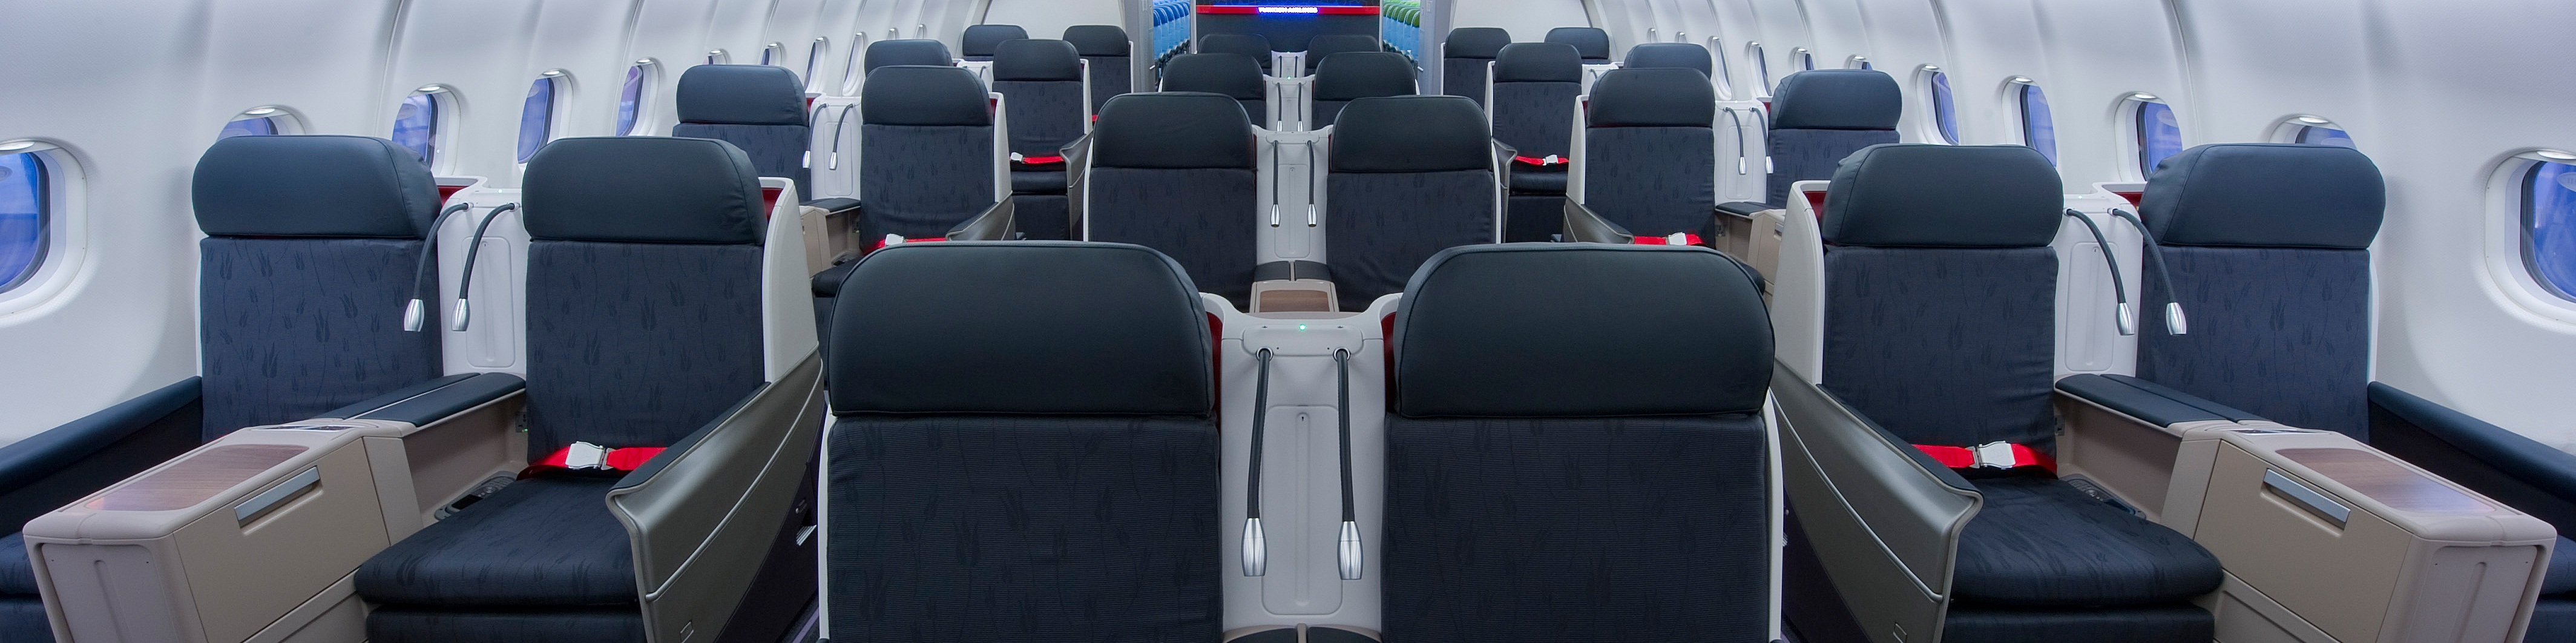 Turkish Airlines - Seating